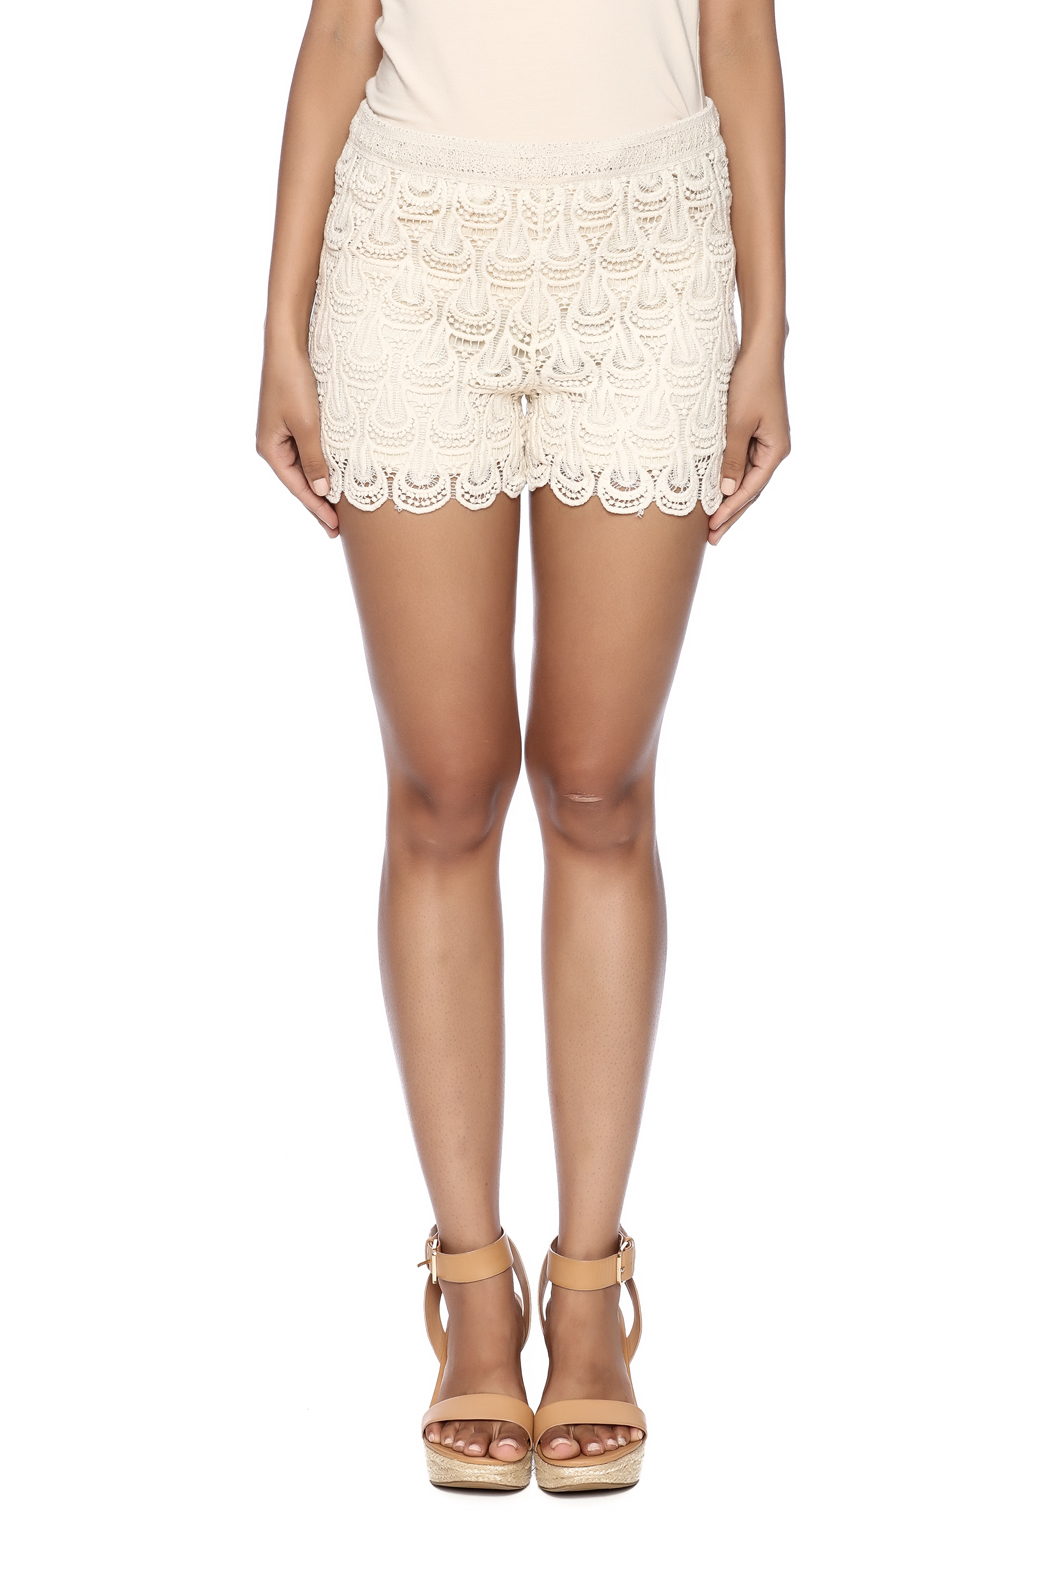 India Boutique Crochet Short - Side Cropped Image